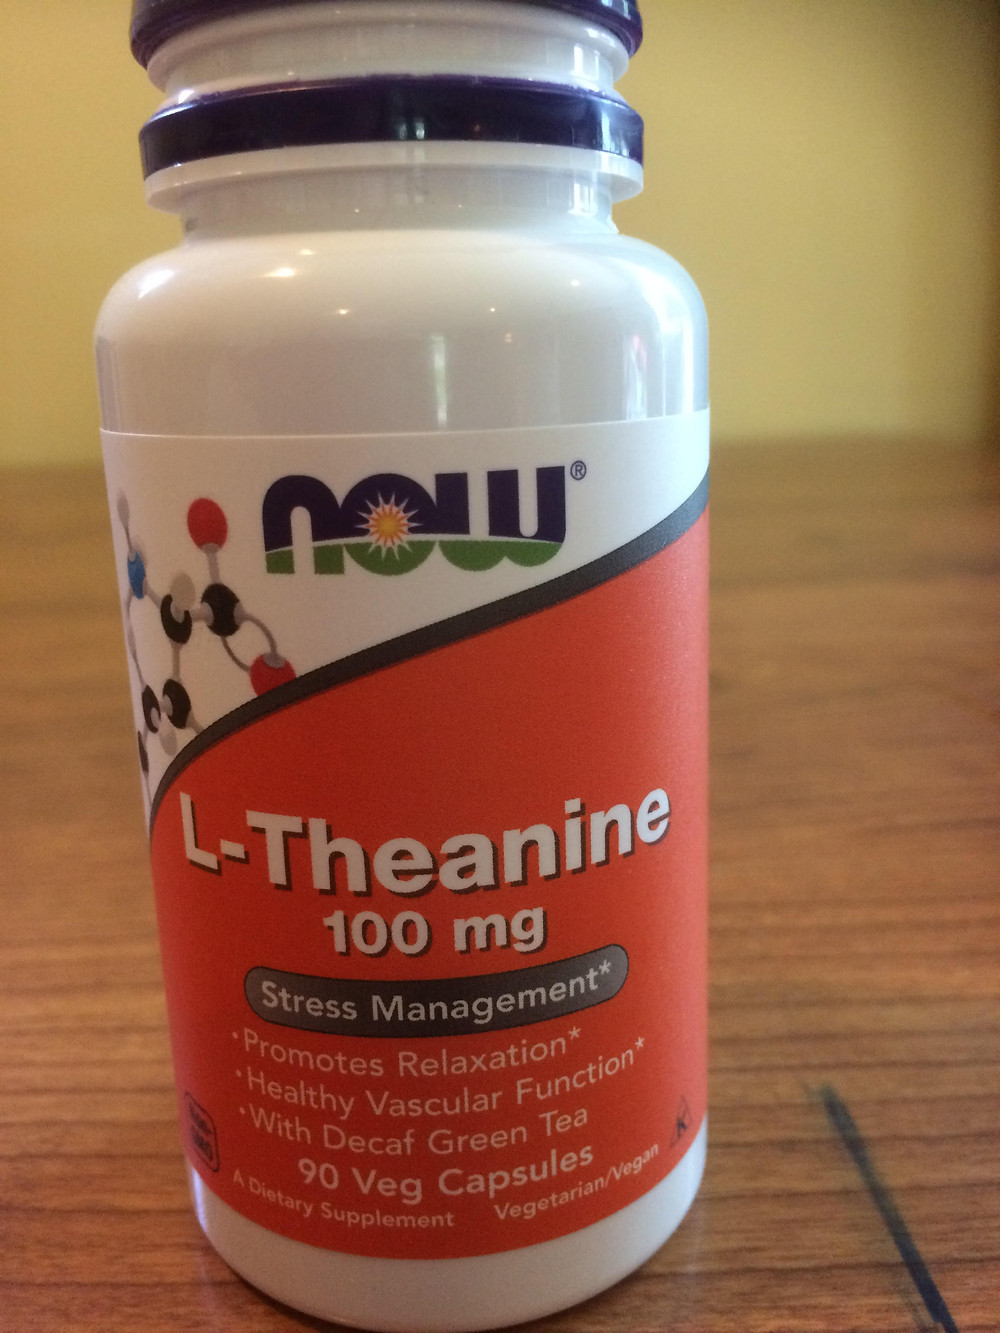 L-Theanine for stress relief